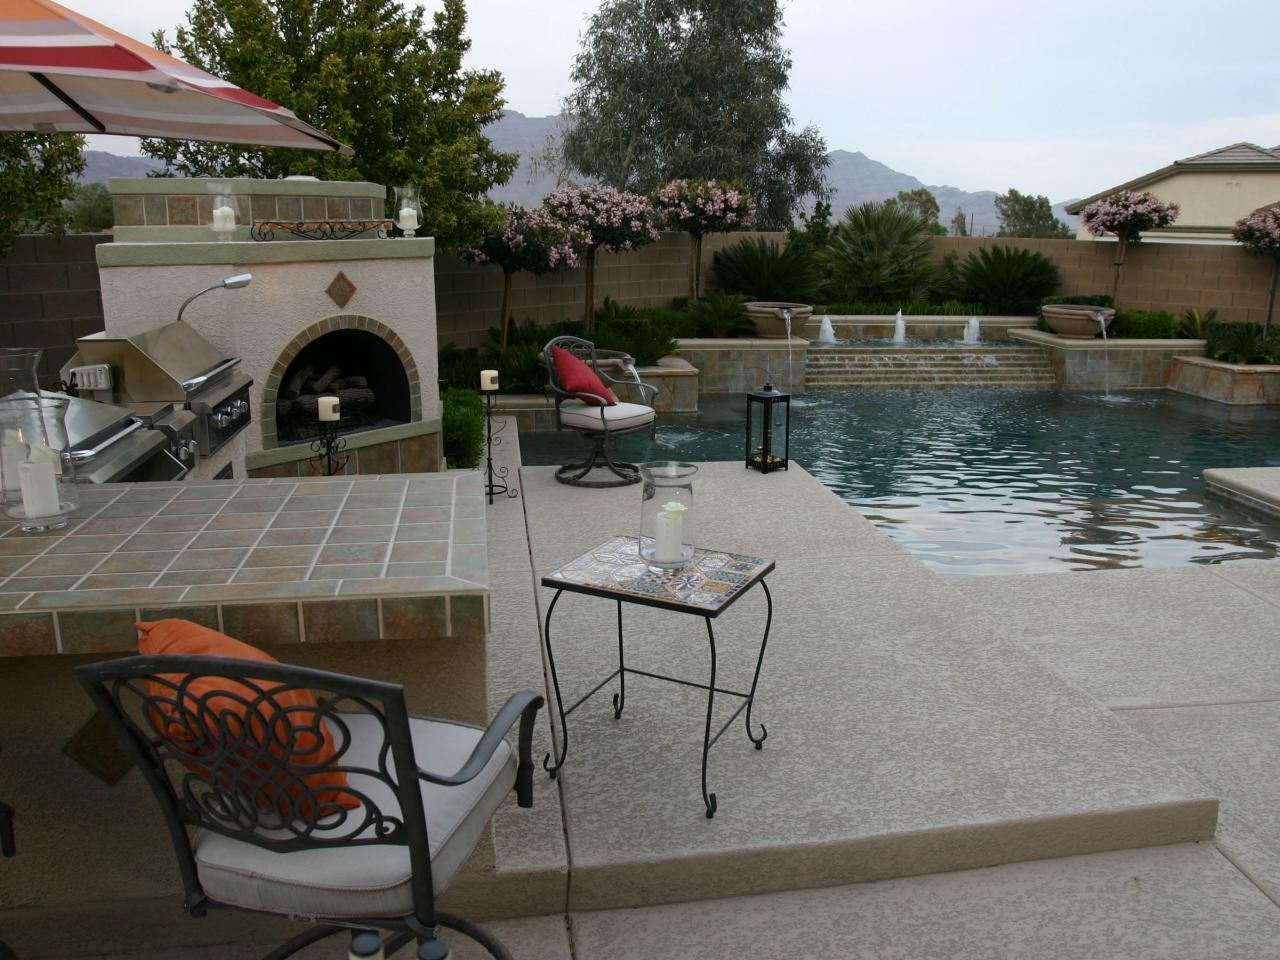 A full backyard entertainment area with an outdoor kitchen is complete with a barbecue and hearth. The neutral tile on the fireplace complements the Mediterranean-style design of this pool and spa.